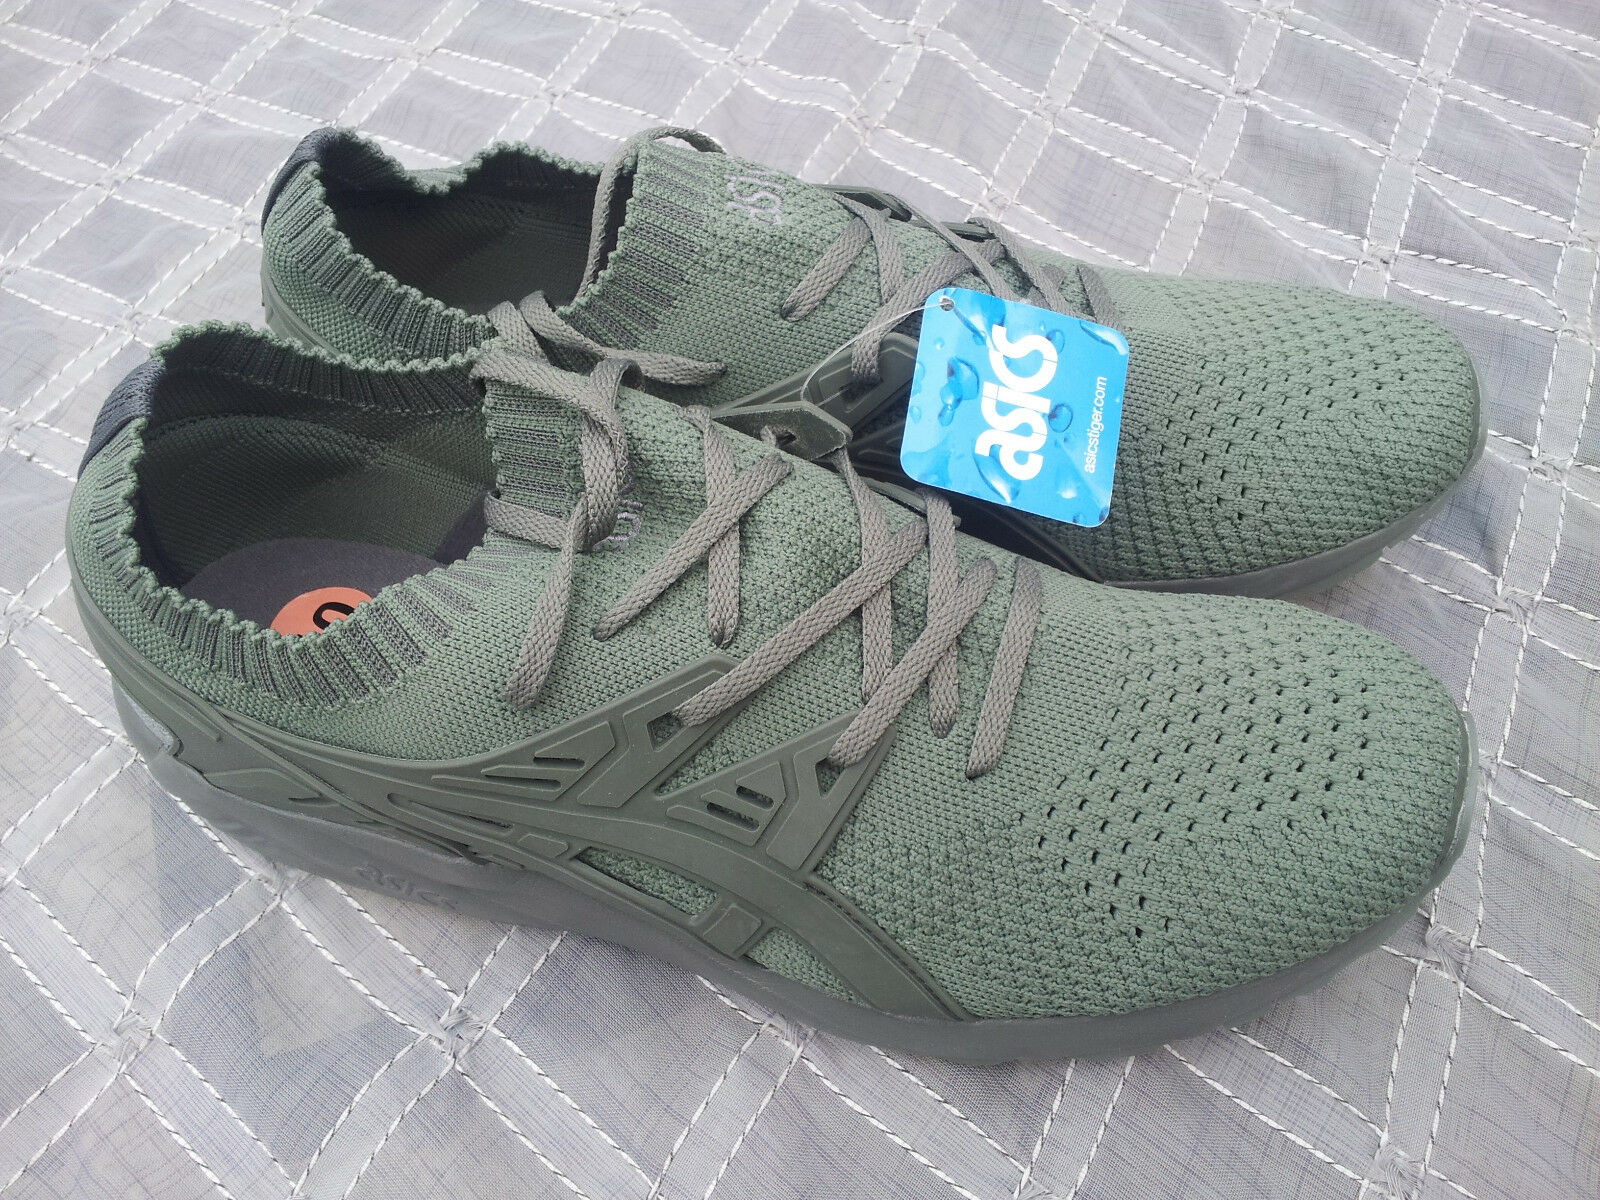 Mens Mens Mens Asics Gel Kayano Sneakers Trainers Running shoes Agave Green Army Olive 10 8c1565